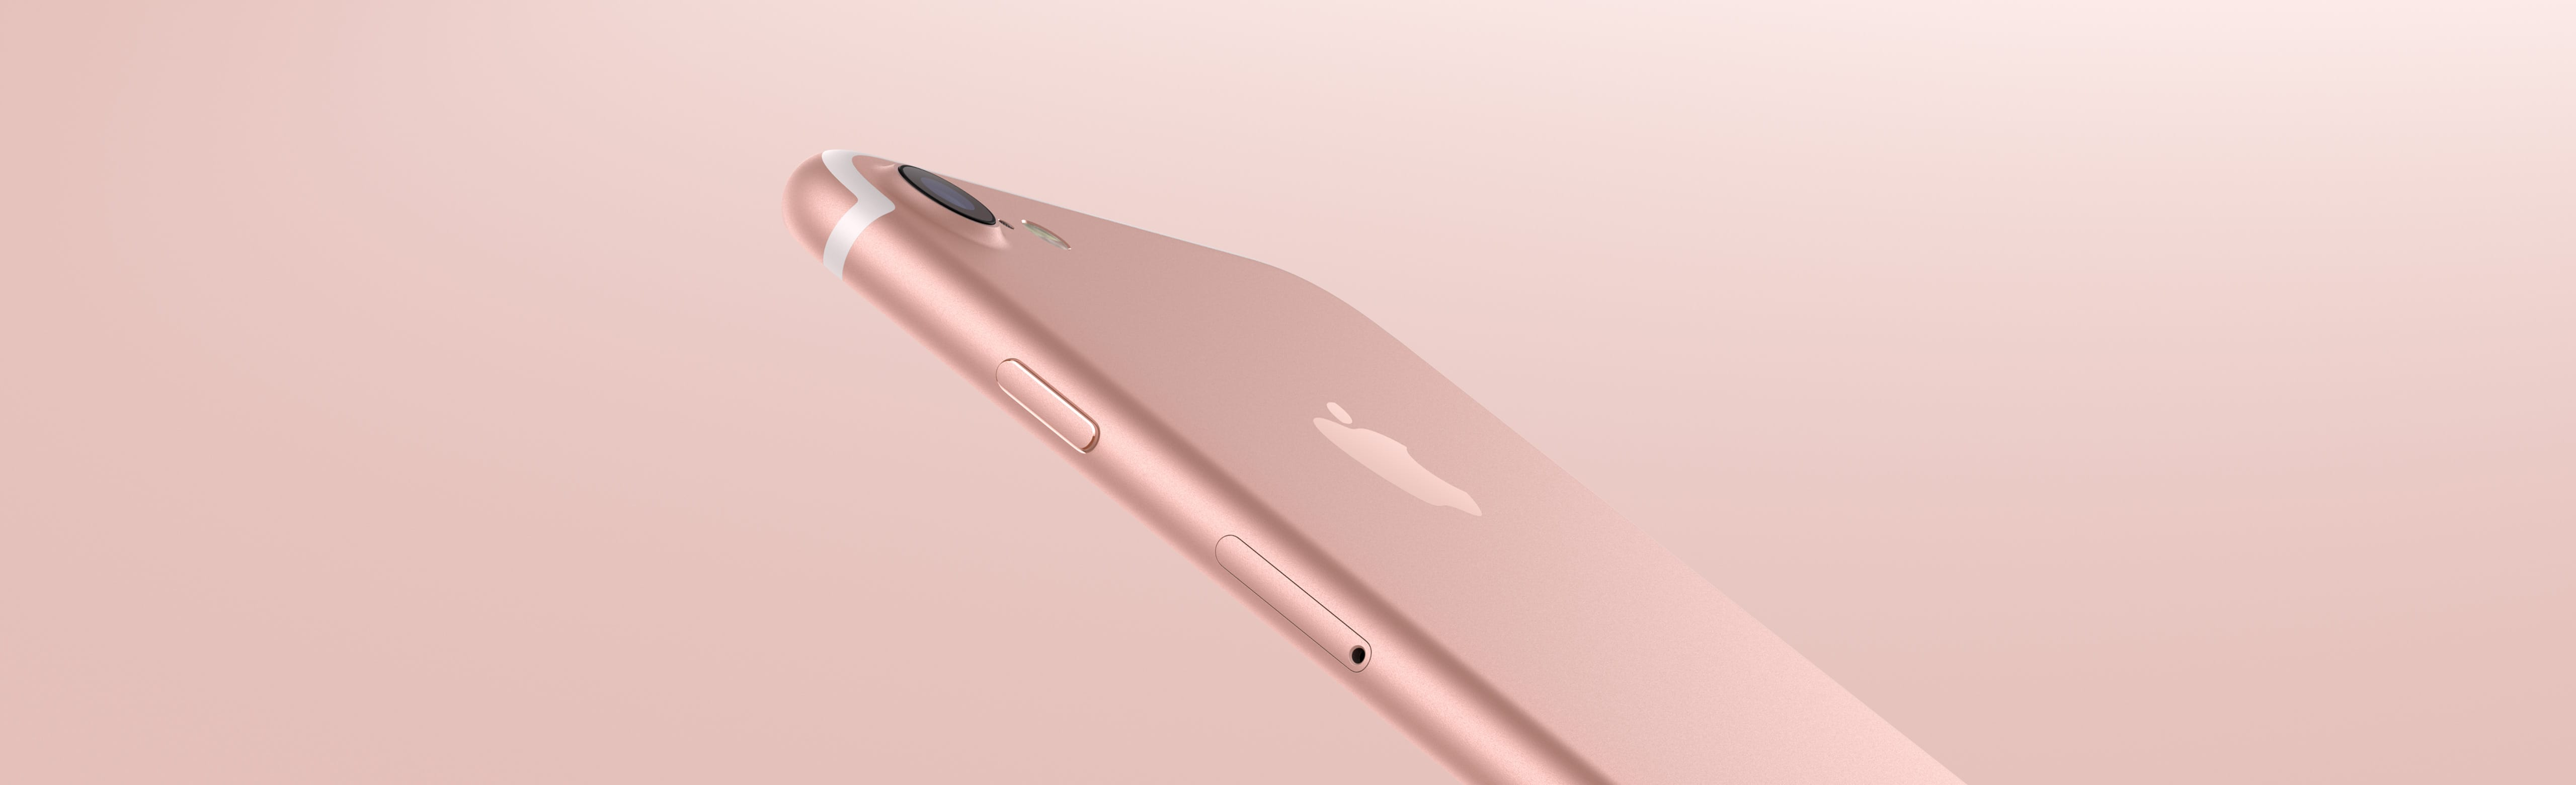 iphone-7-rose-gold-hero